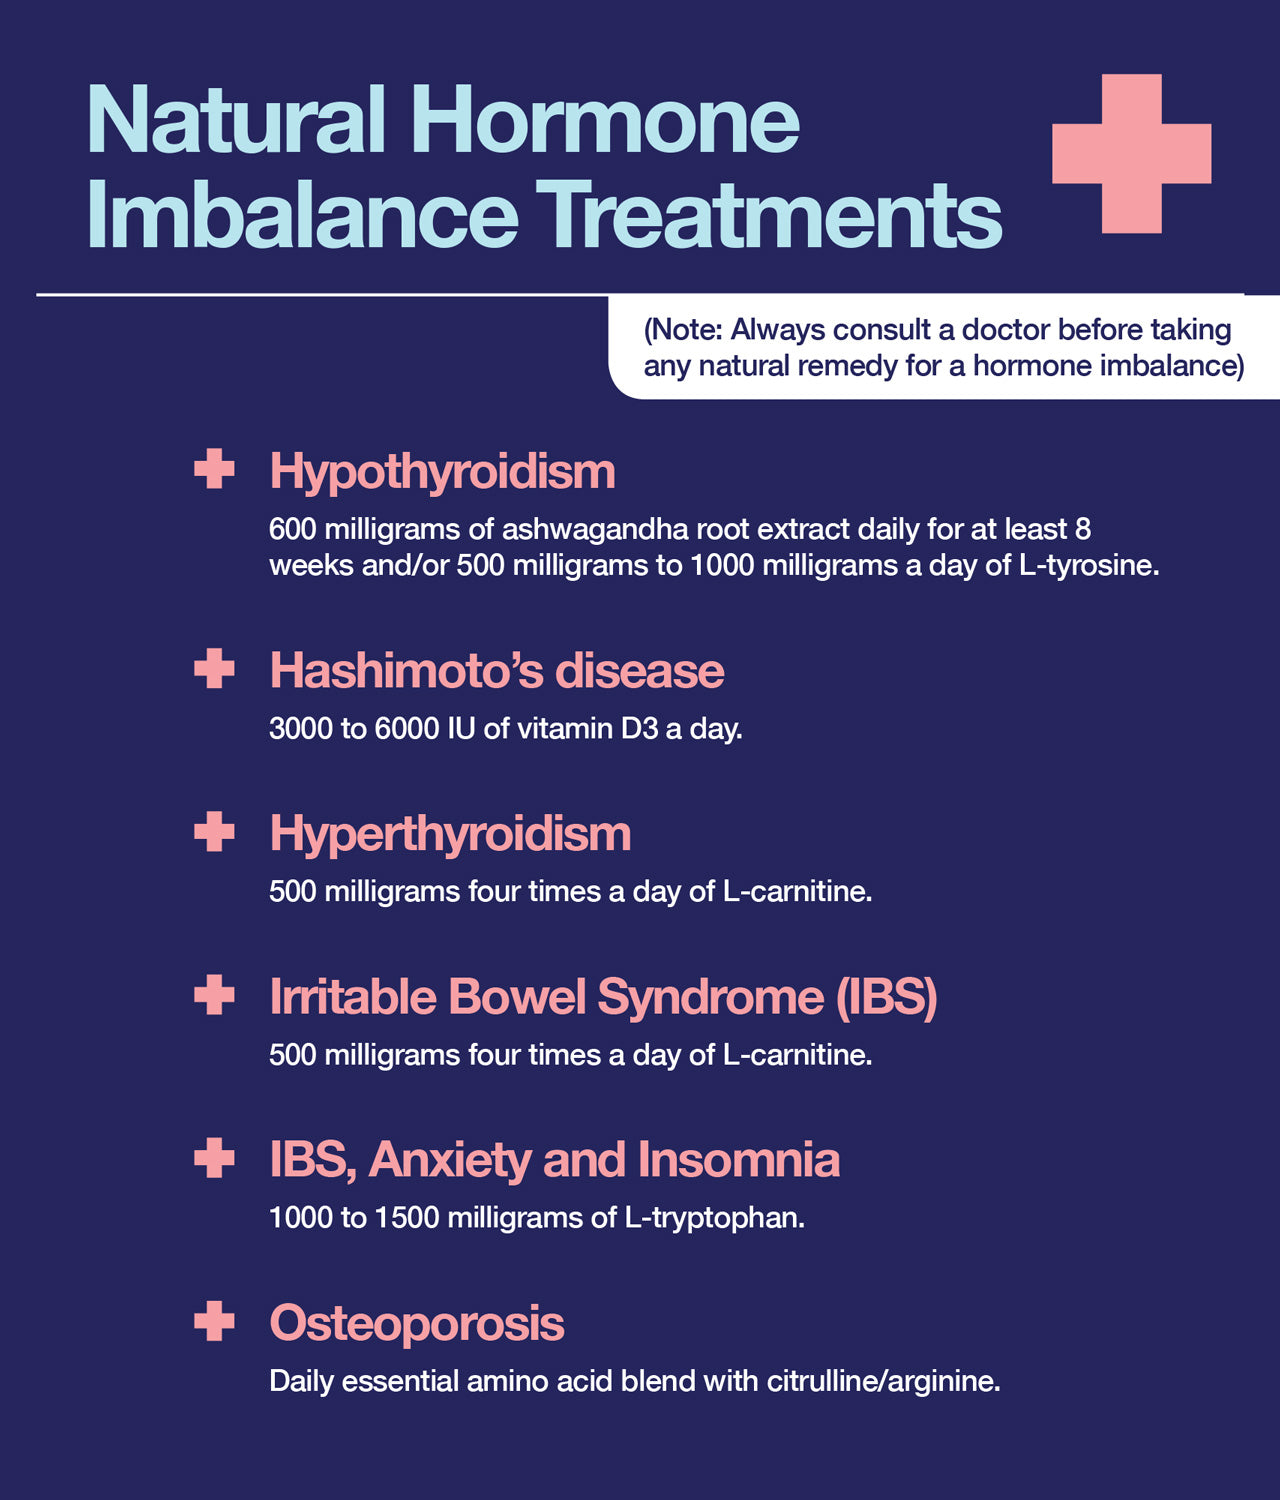 Are you looking for a natural hormone imbalance treatment?